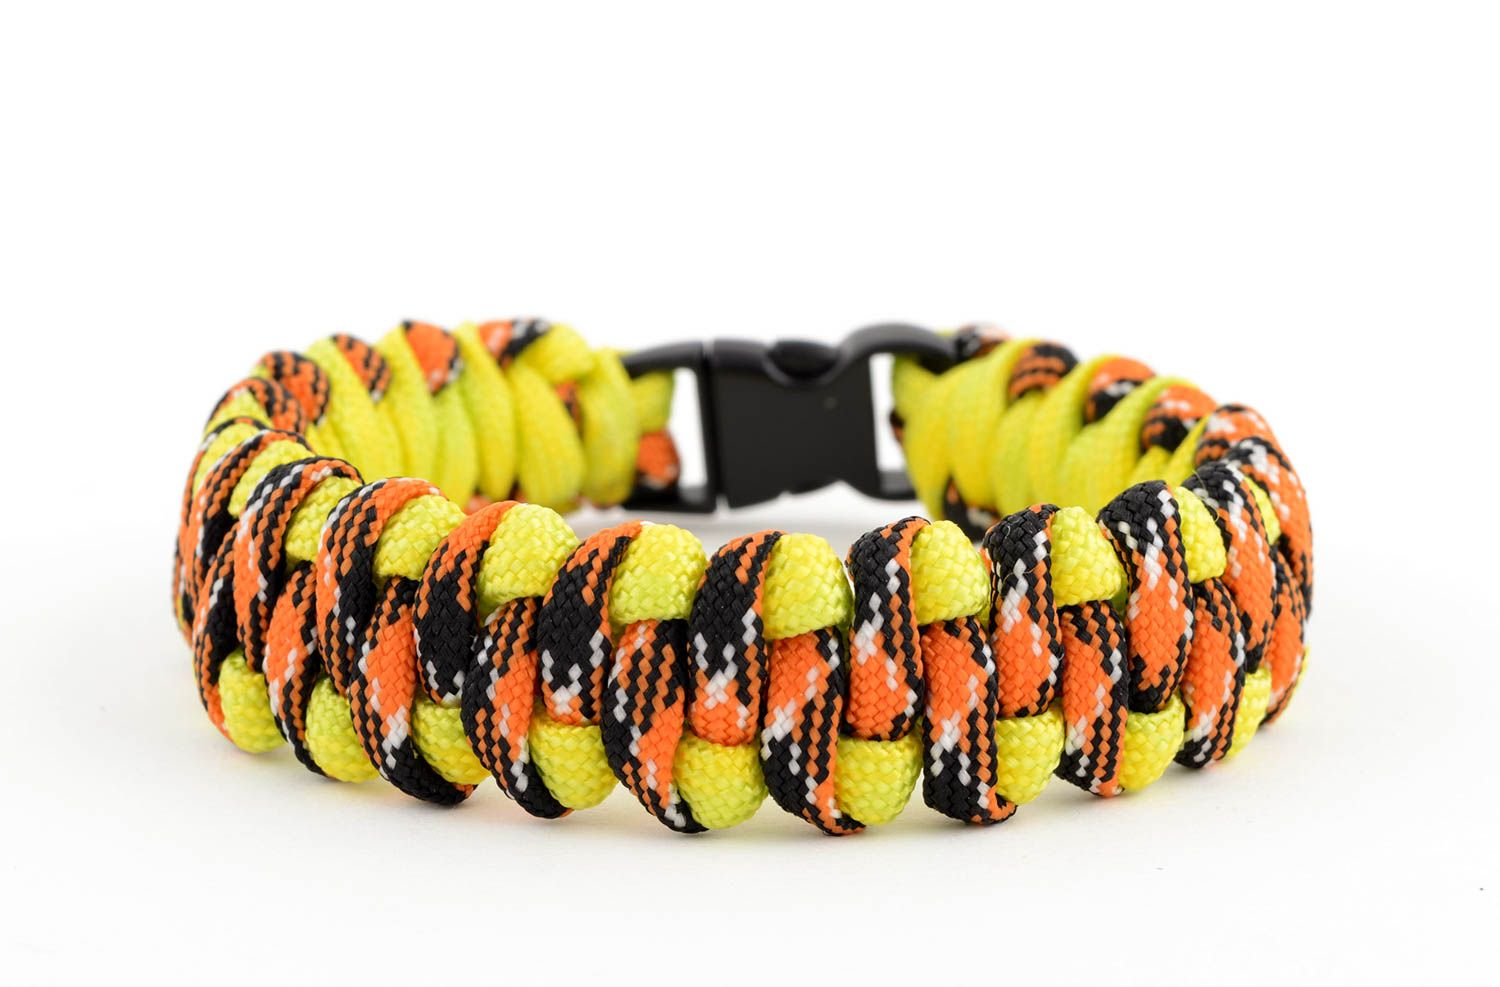 Handmade paracord bracelet parachute cord bracelet hiking equipment cool gifts photo 5